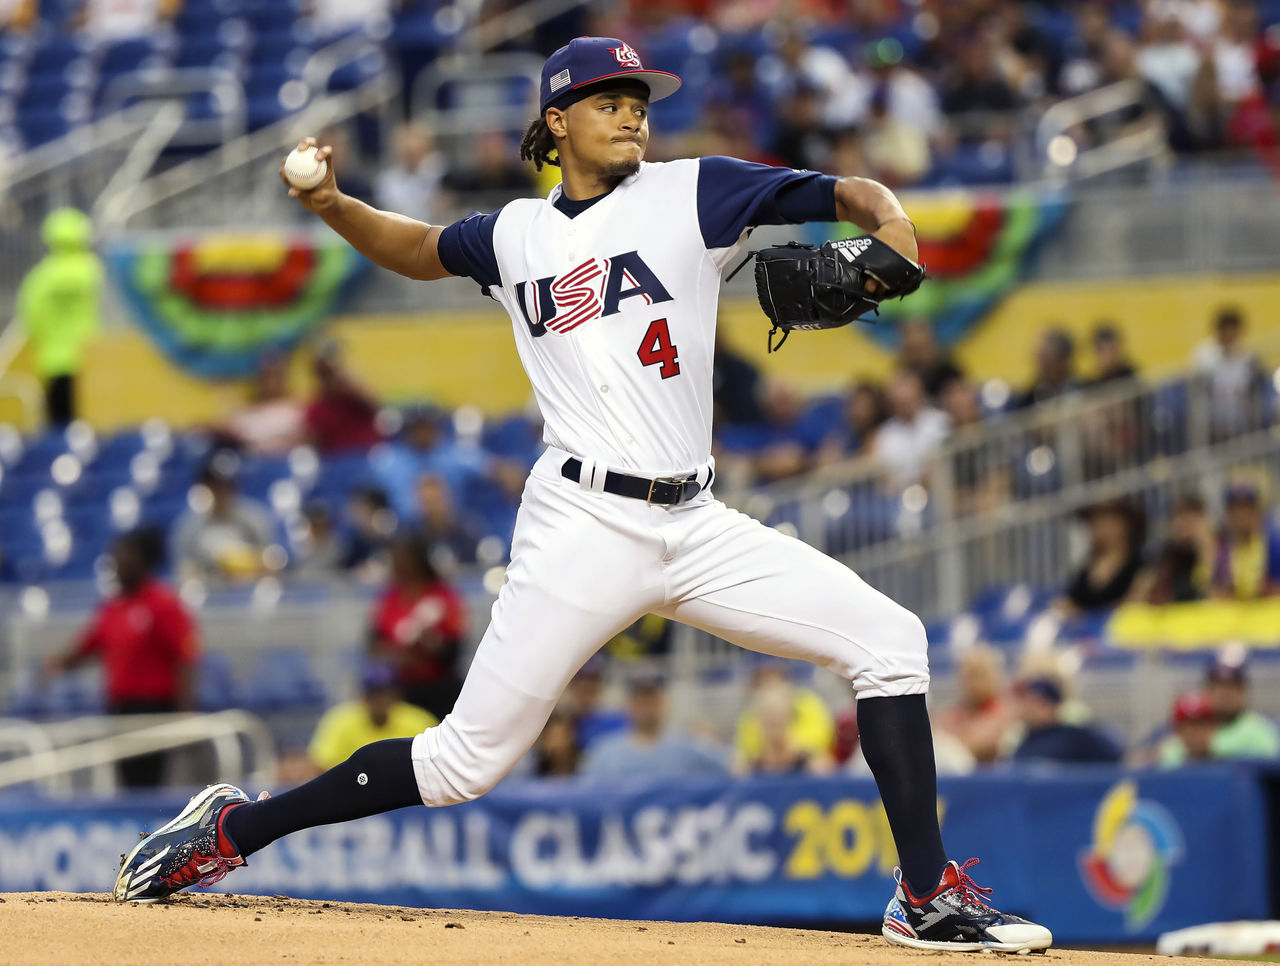 Cropped 2017 03 11t002256z 720570864 nocid rtrmadp 3 baseball world baseball classic colombia at usa